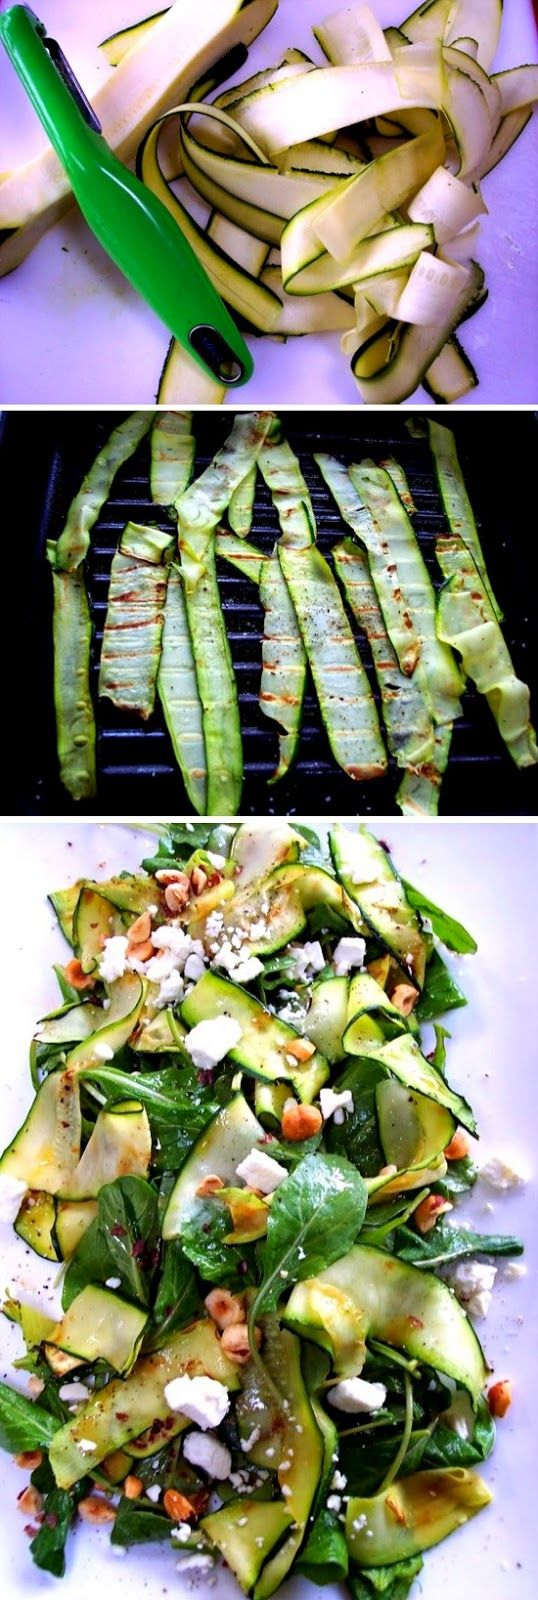 Selected Best Photos : Zucchini Ribbon Salad